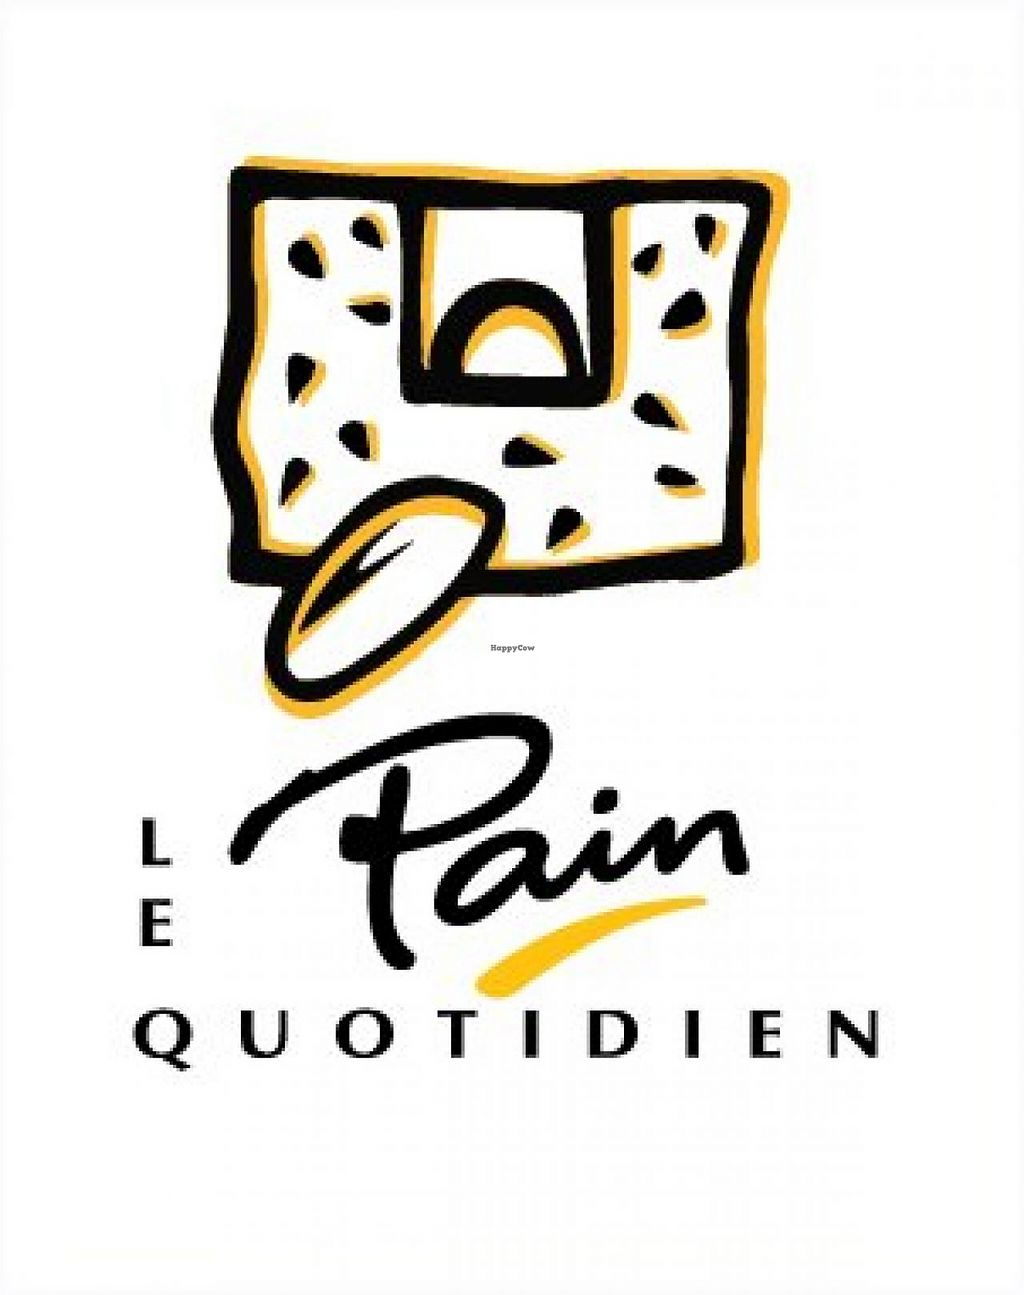 """Photo of Le Pain Quotidien  by <a href=""""/members/profile/community"""">community</a> <br/>Le Pain Quotidien <br/> February 15, 2014  - <a href='/contact/abuse/image/45331/64334'>Report</a>"""